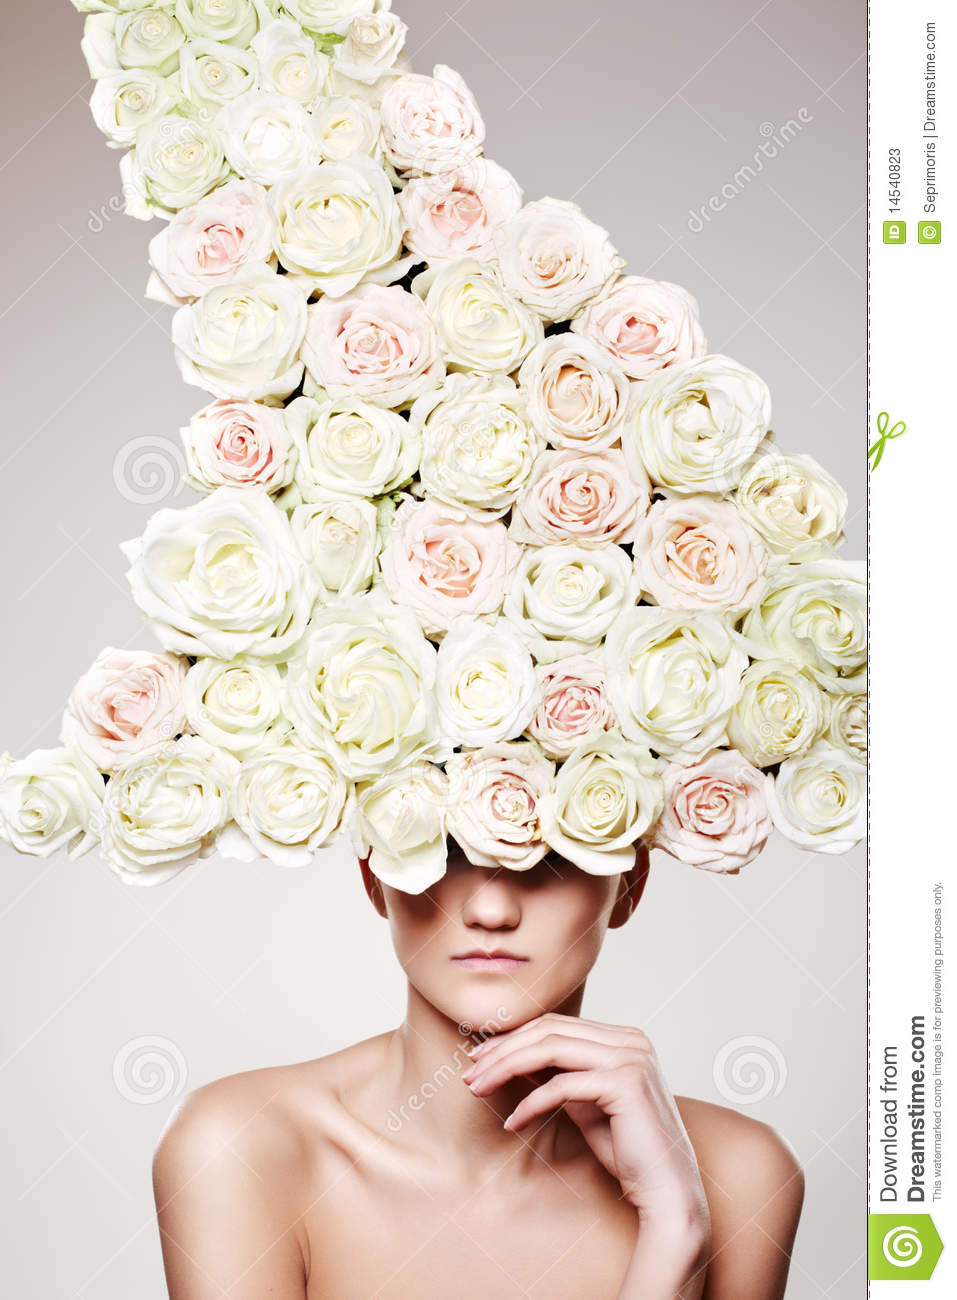 Luxury woman with a rose hat in fashion model pose